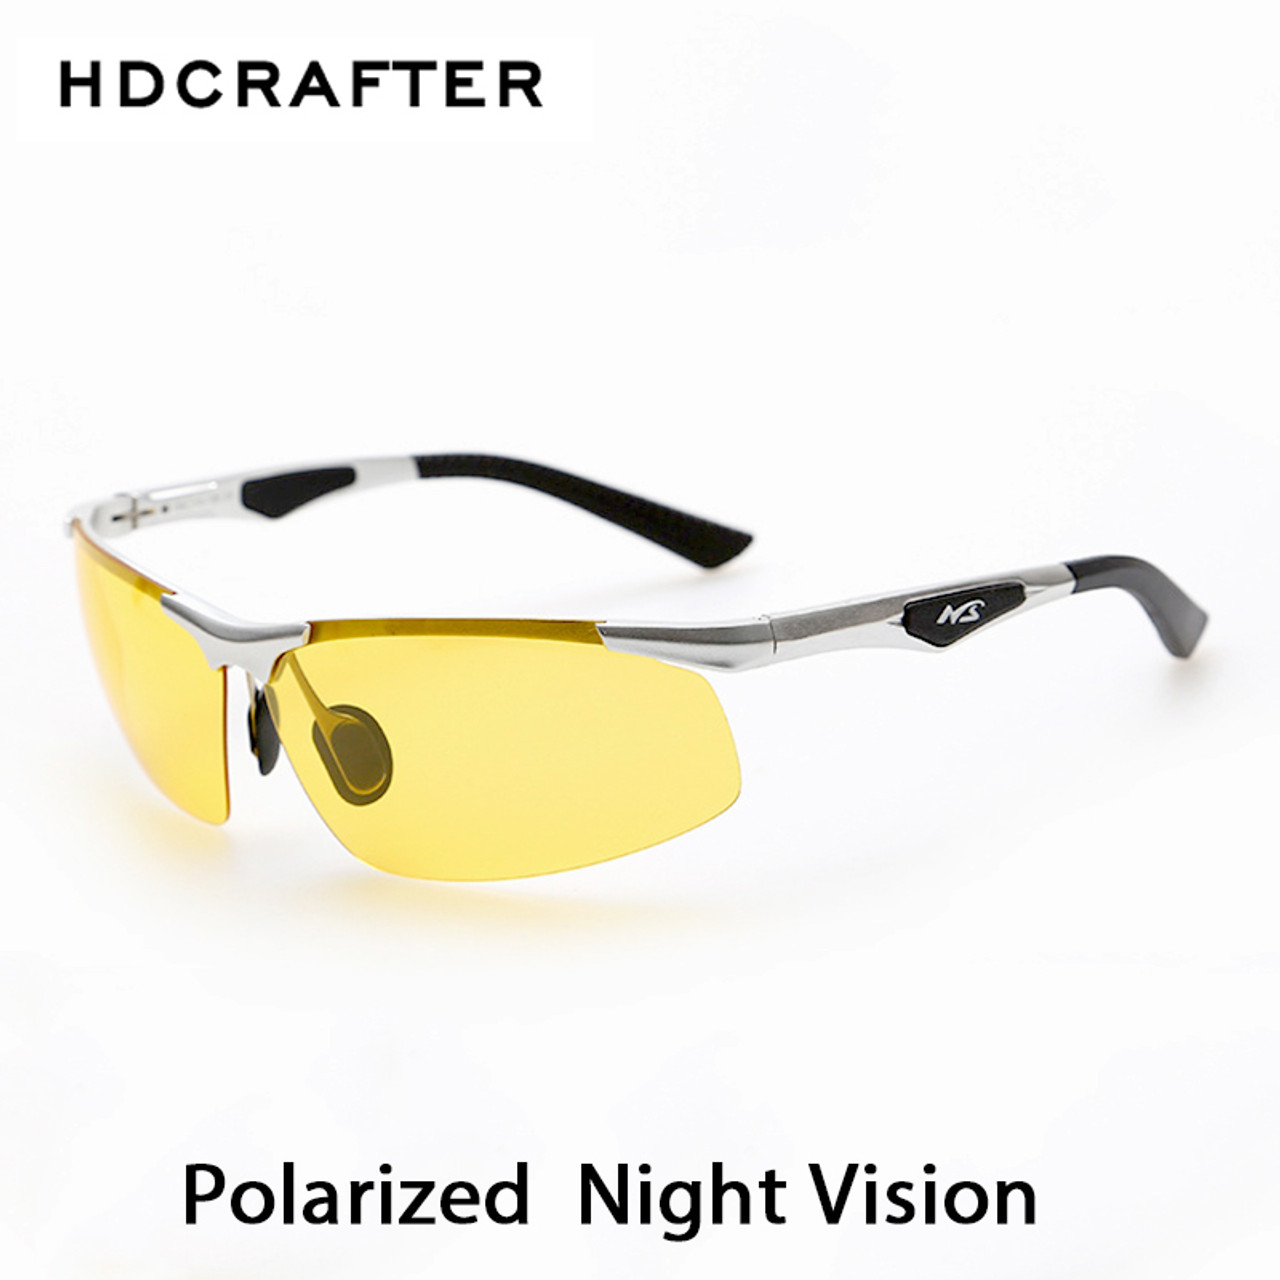 48546b3c6cb Night Driving New HDCRAFTER Anti-Glare Goggles Eyeglasses Polarized Driving  Sunglasses Yellow Lens Night Vision ...